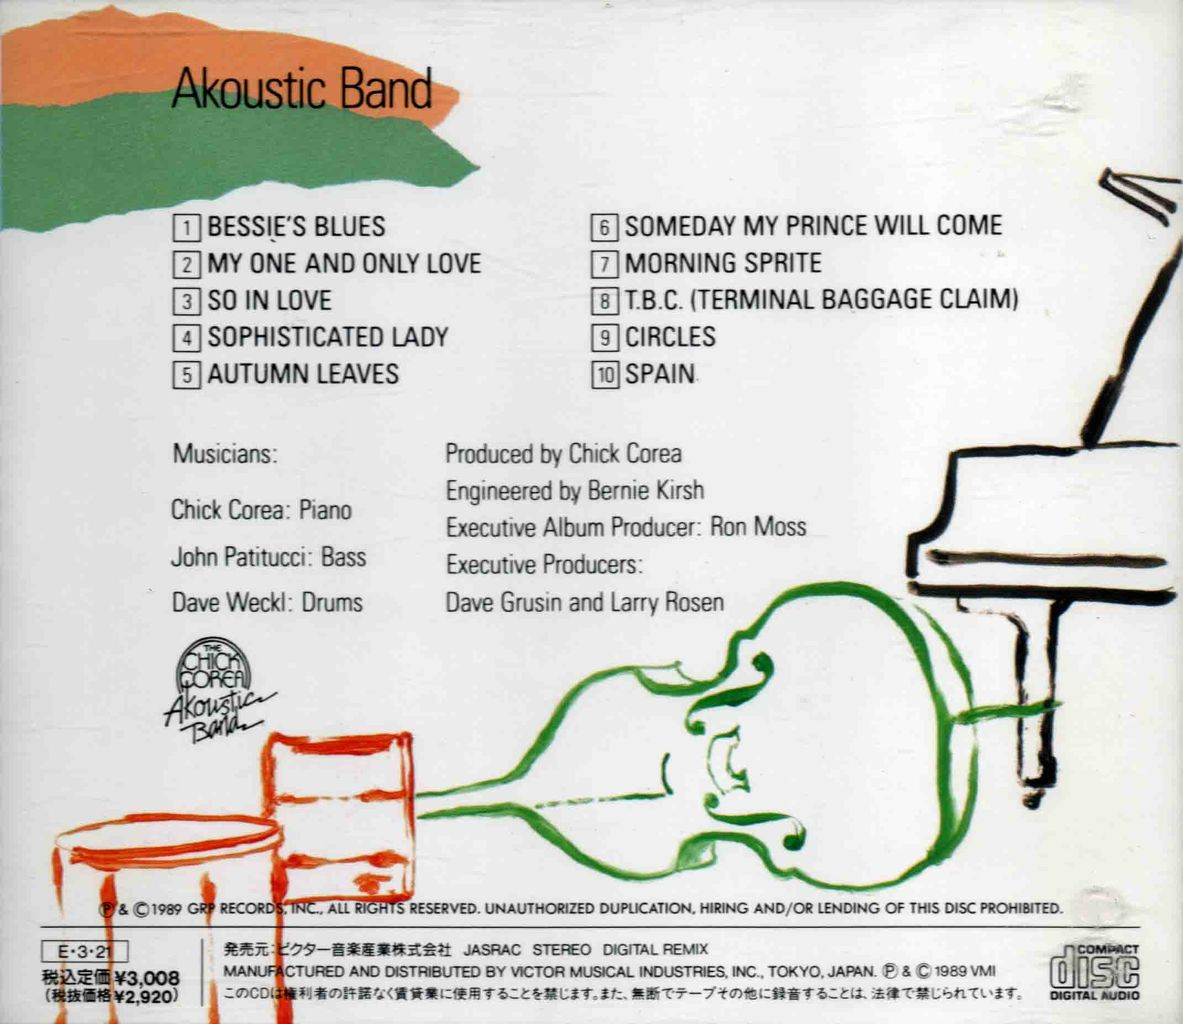 CHICK COREA AKOUSTIC BAND-2